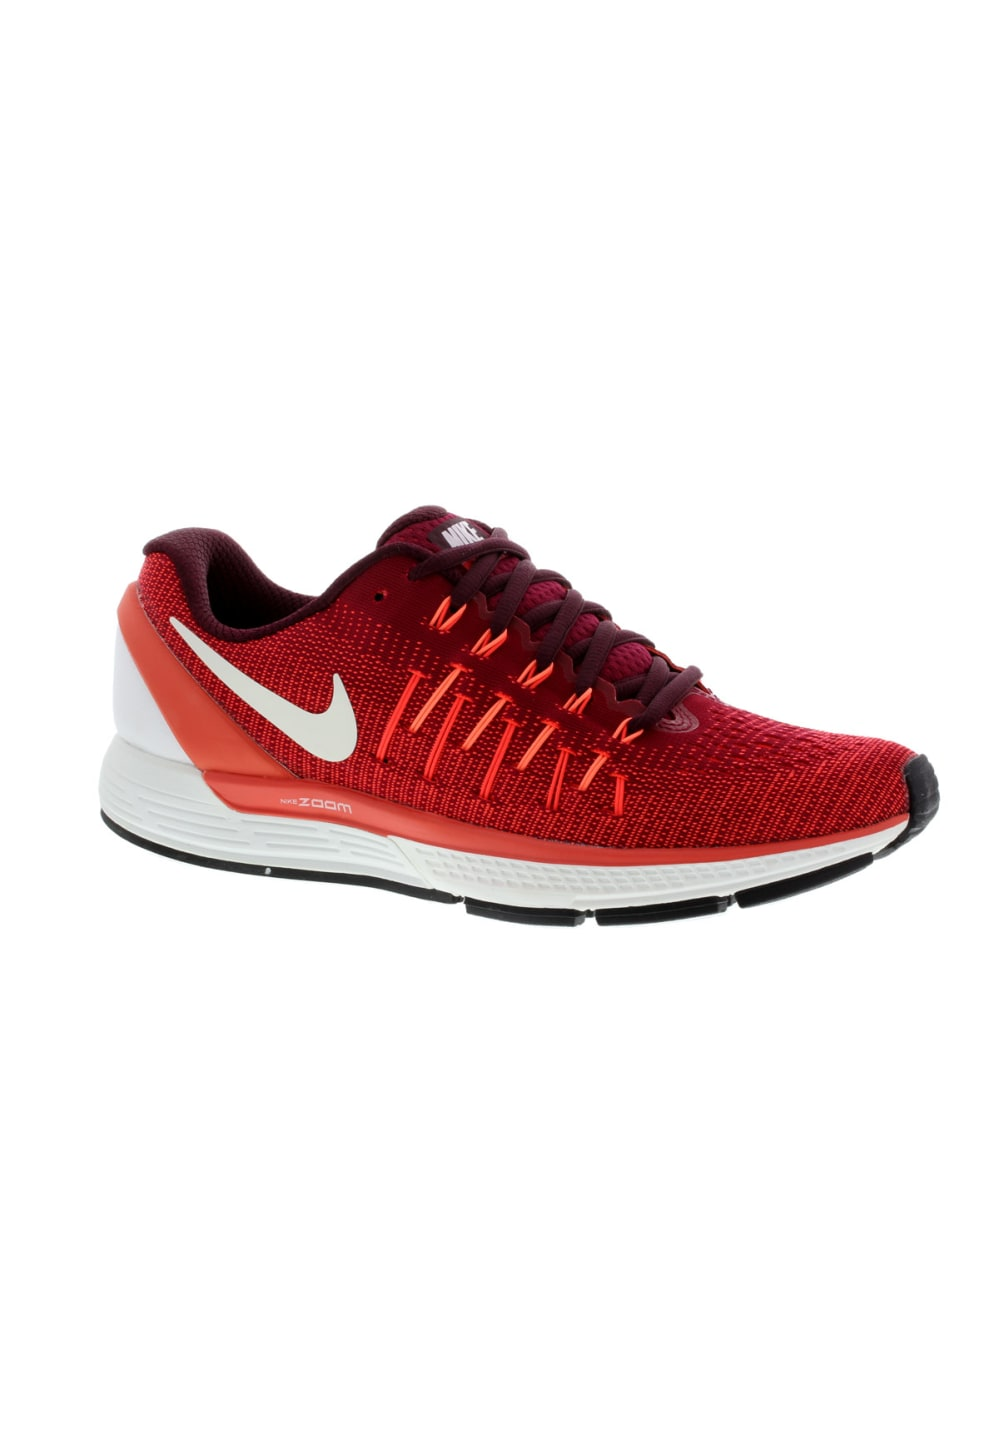 Chaussures Nike Pour Zoom Odyssey Air Running 2 Femme Rouge21run 34RA5jL